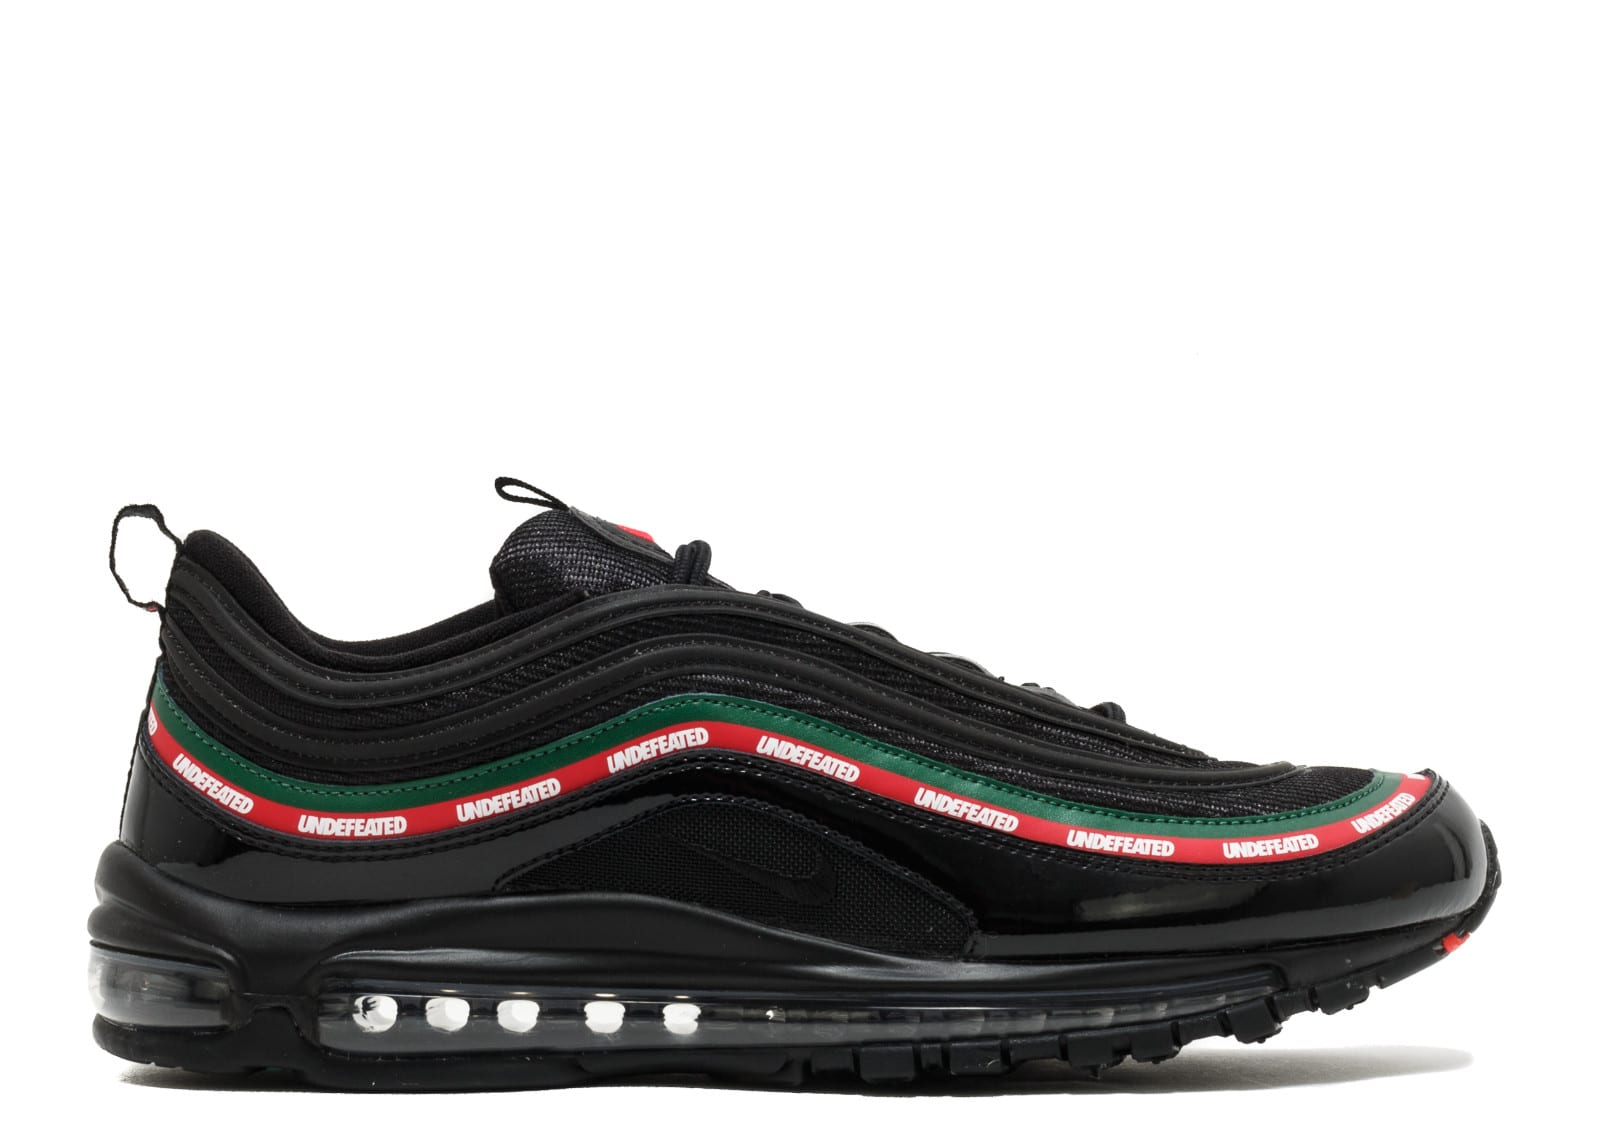 4877cbf1fbd8e Air Max Day: 26 Freshest Nike Air Max Colorways Over the Last 5 Years